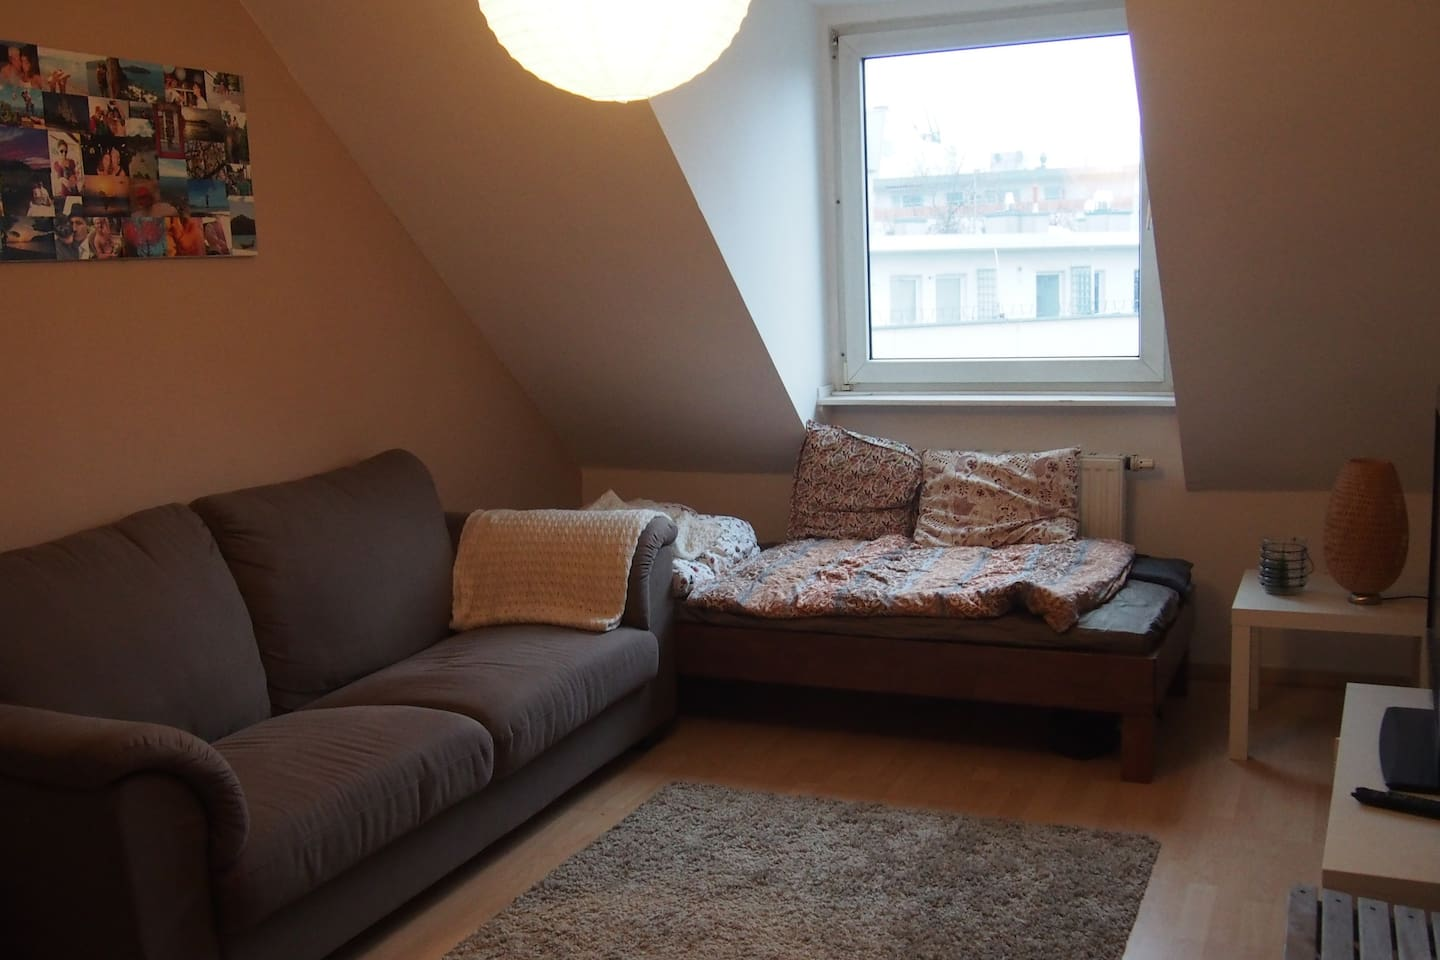 The Living Room, w/ one Single Bed and a comfortable couch + TV